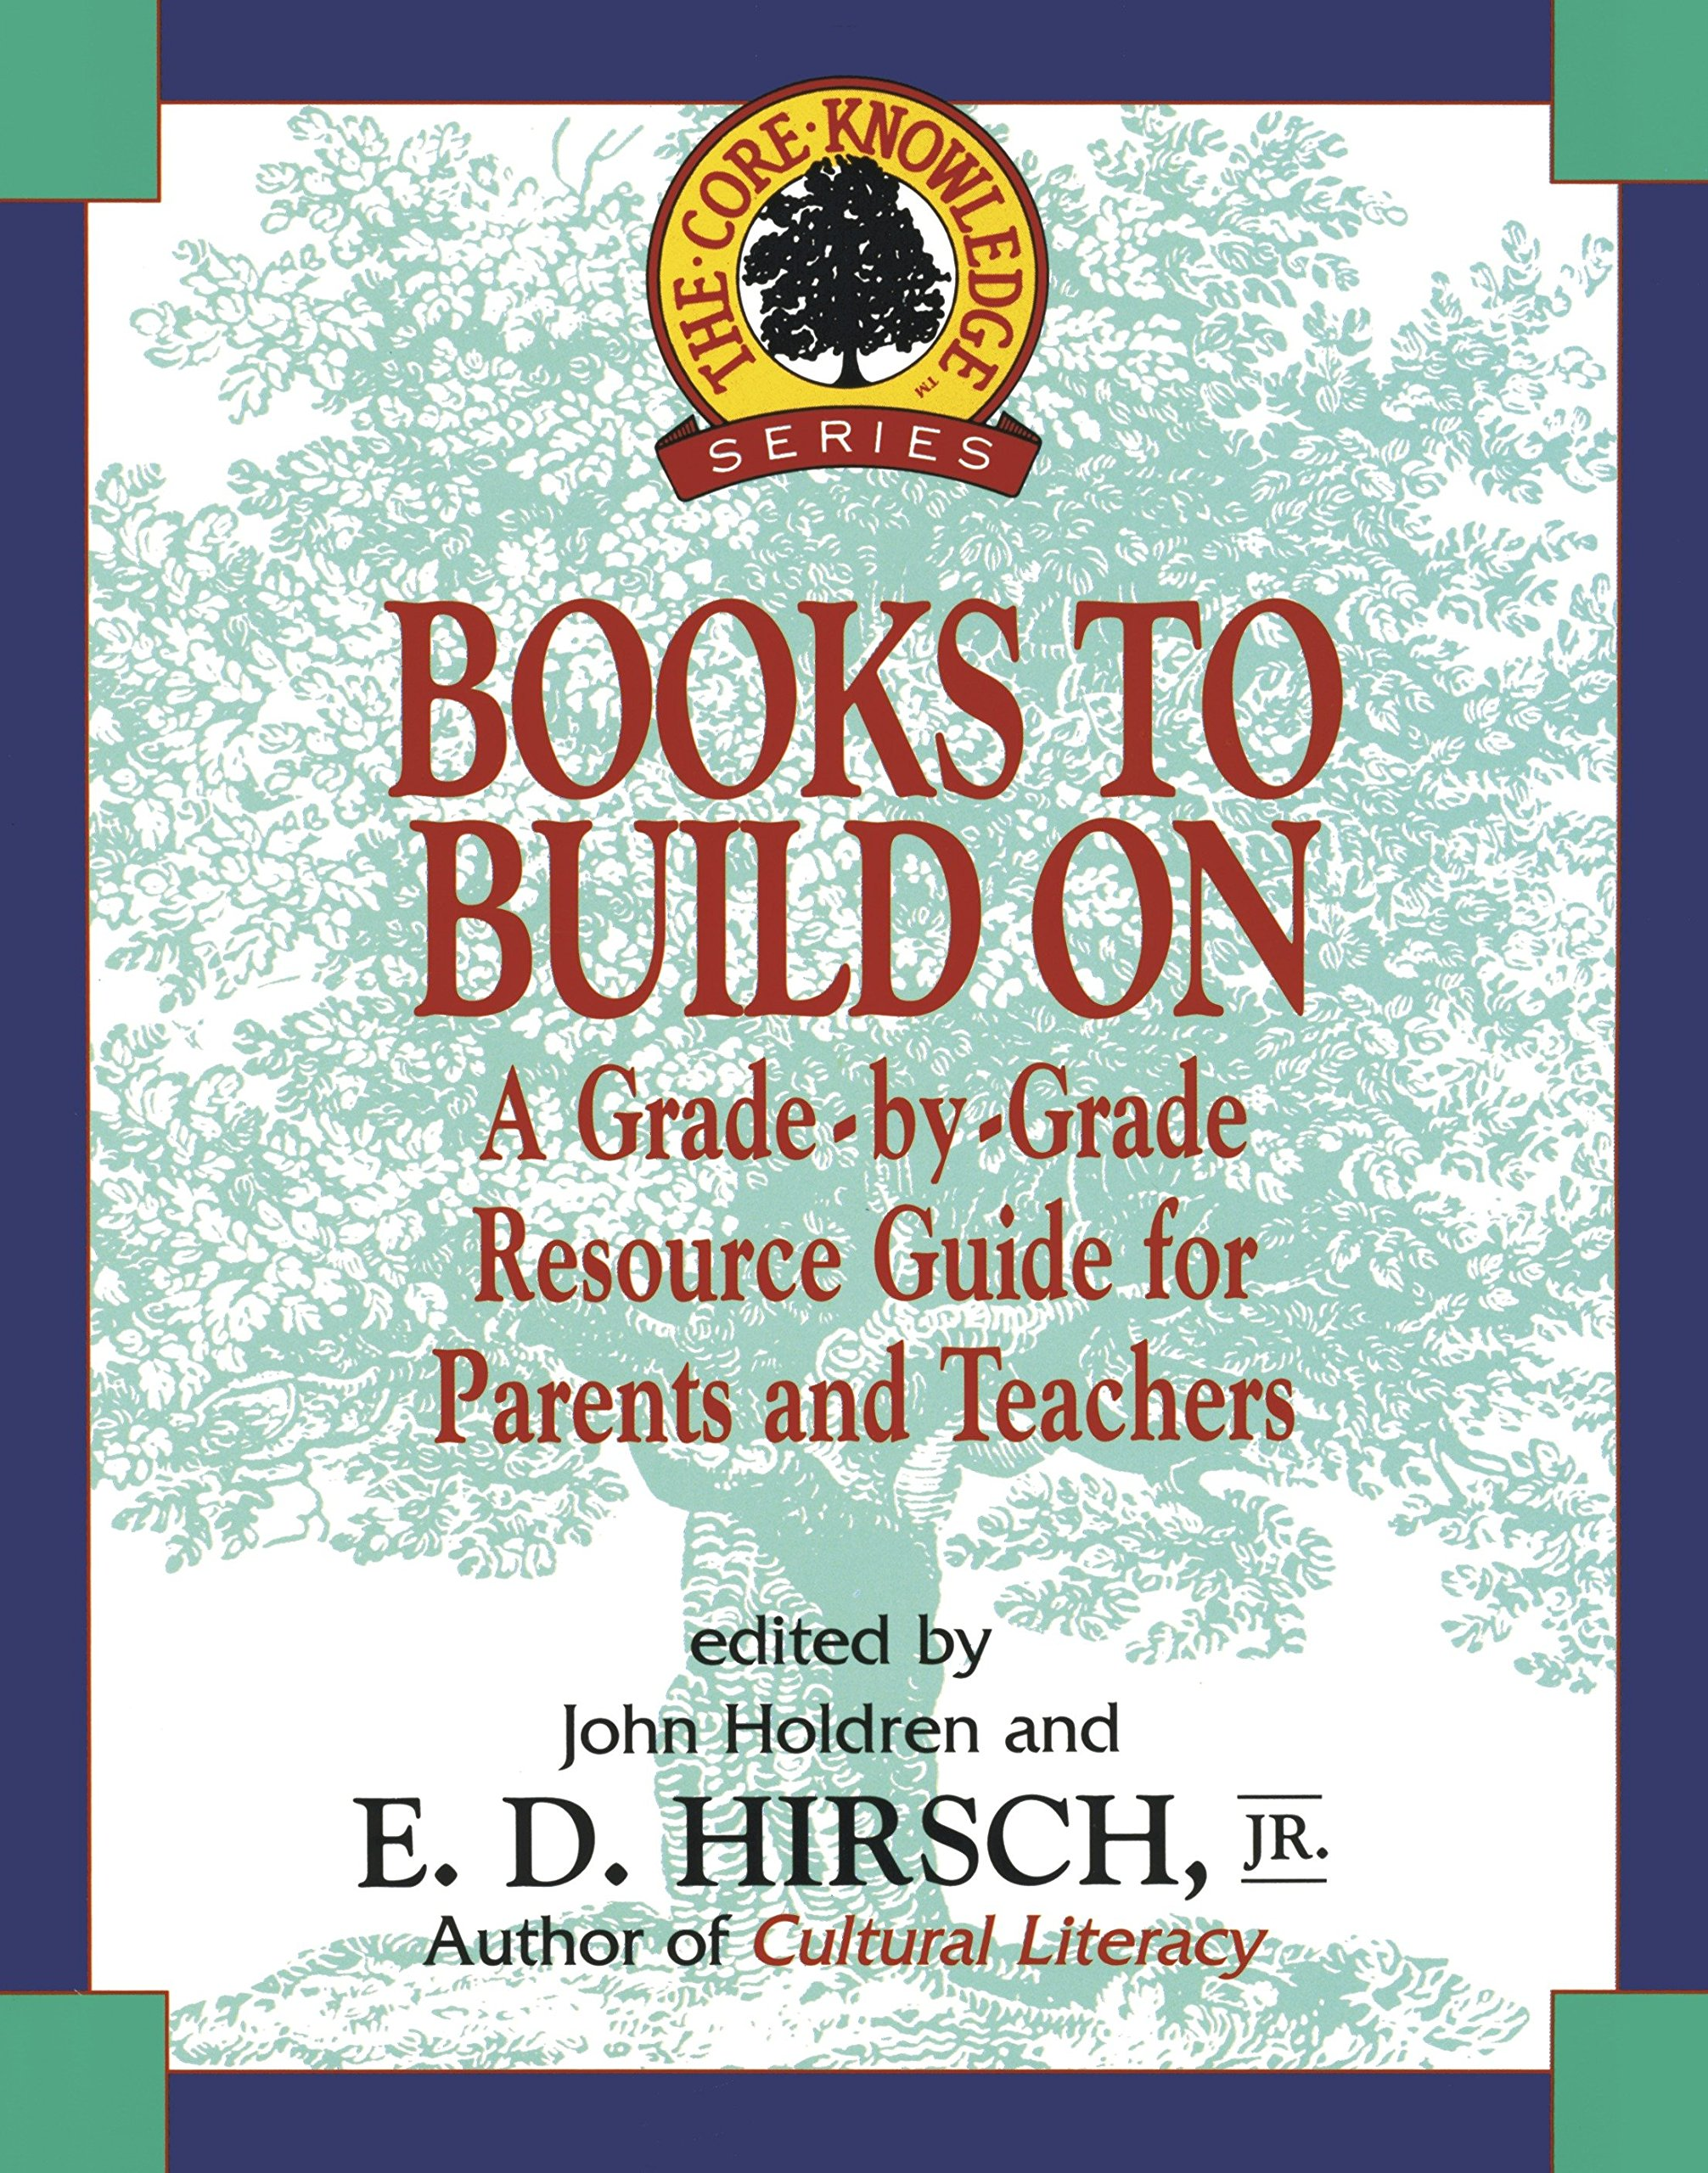 books to build on a grade by grade resource guide for parents and